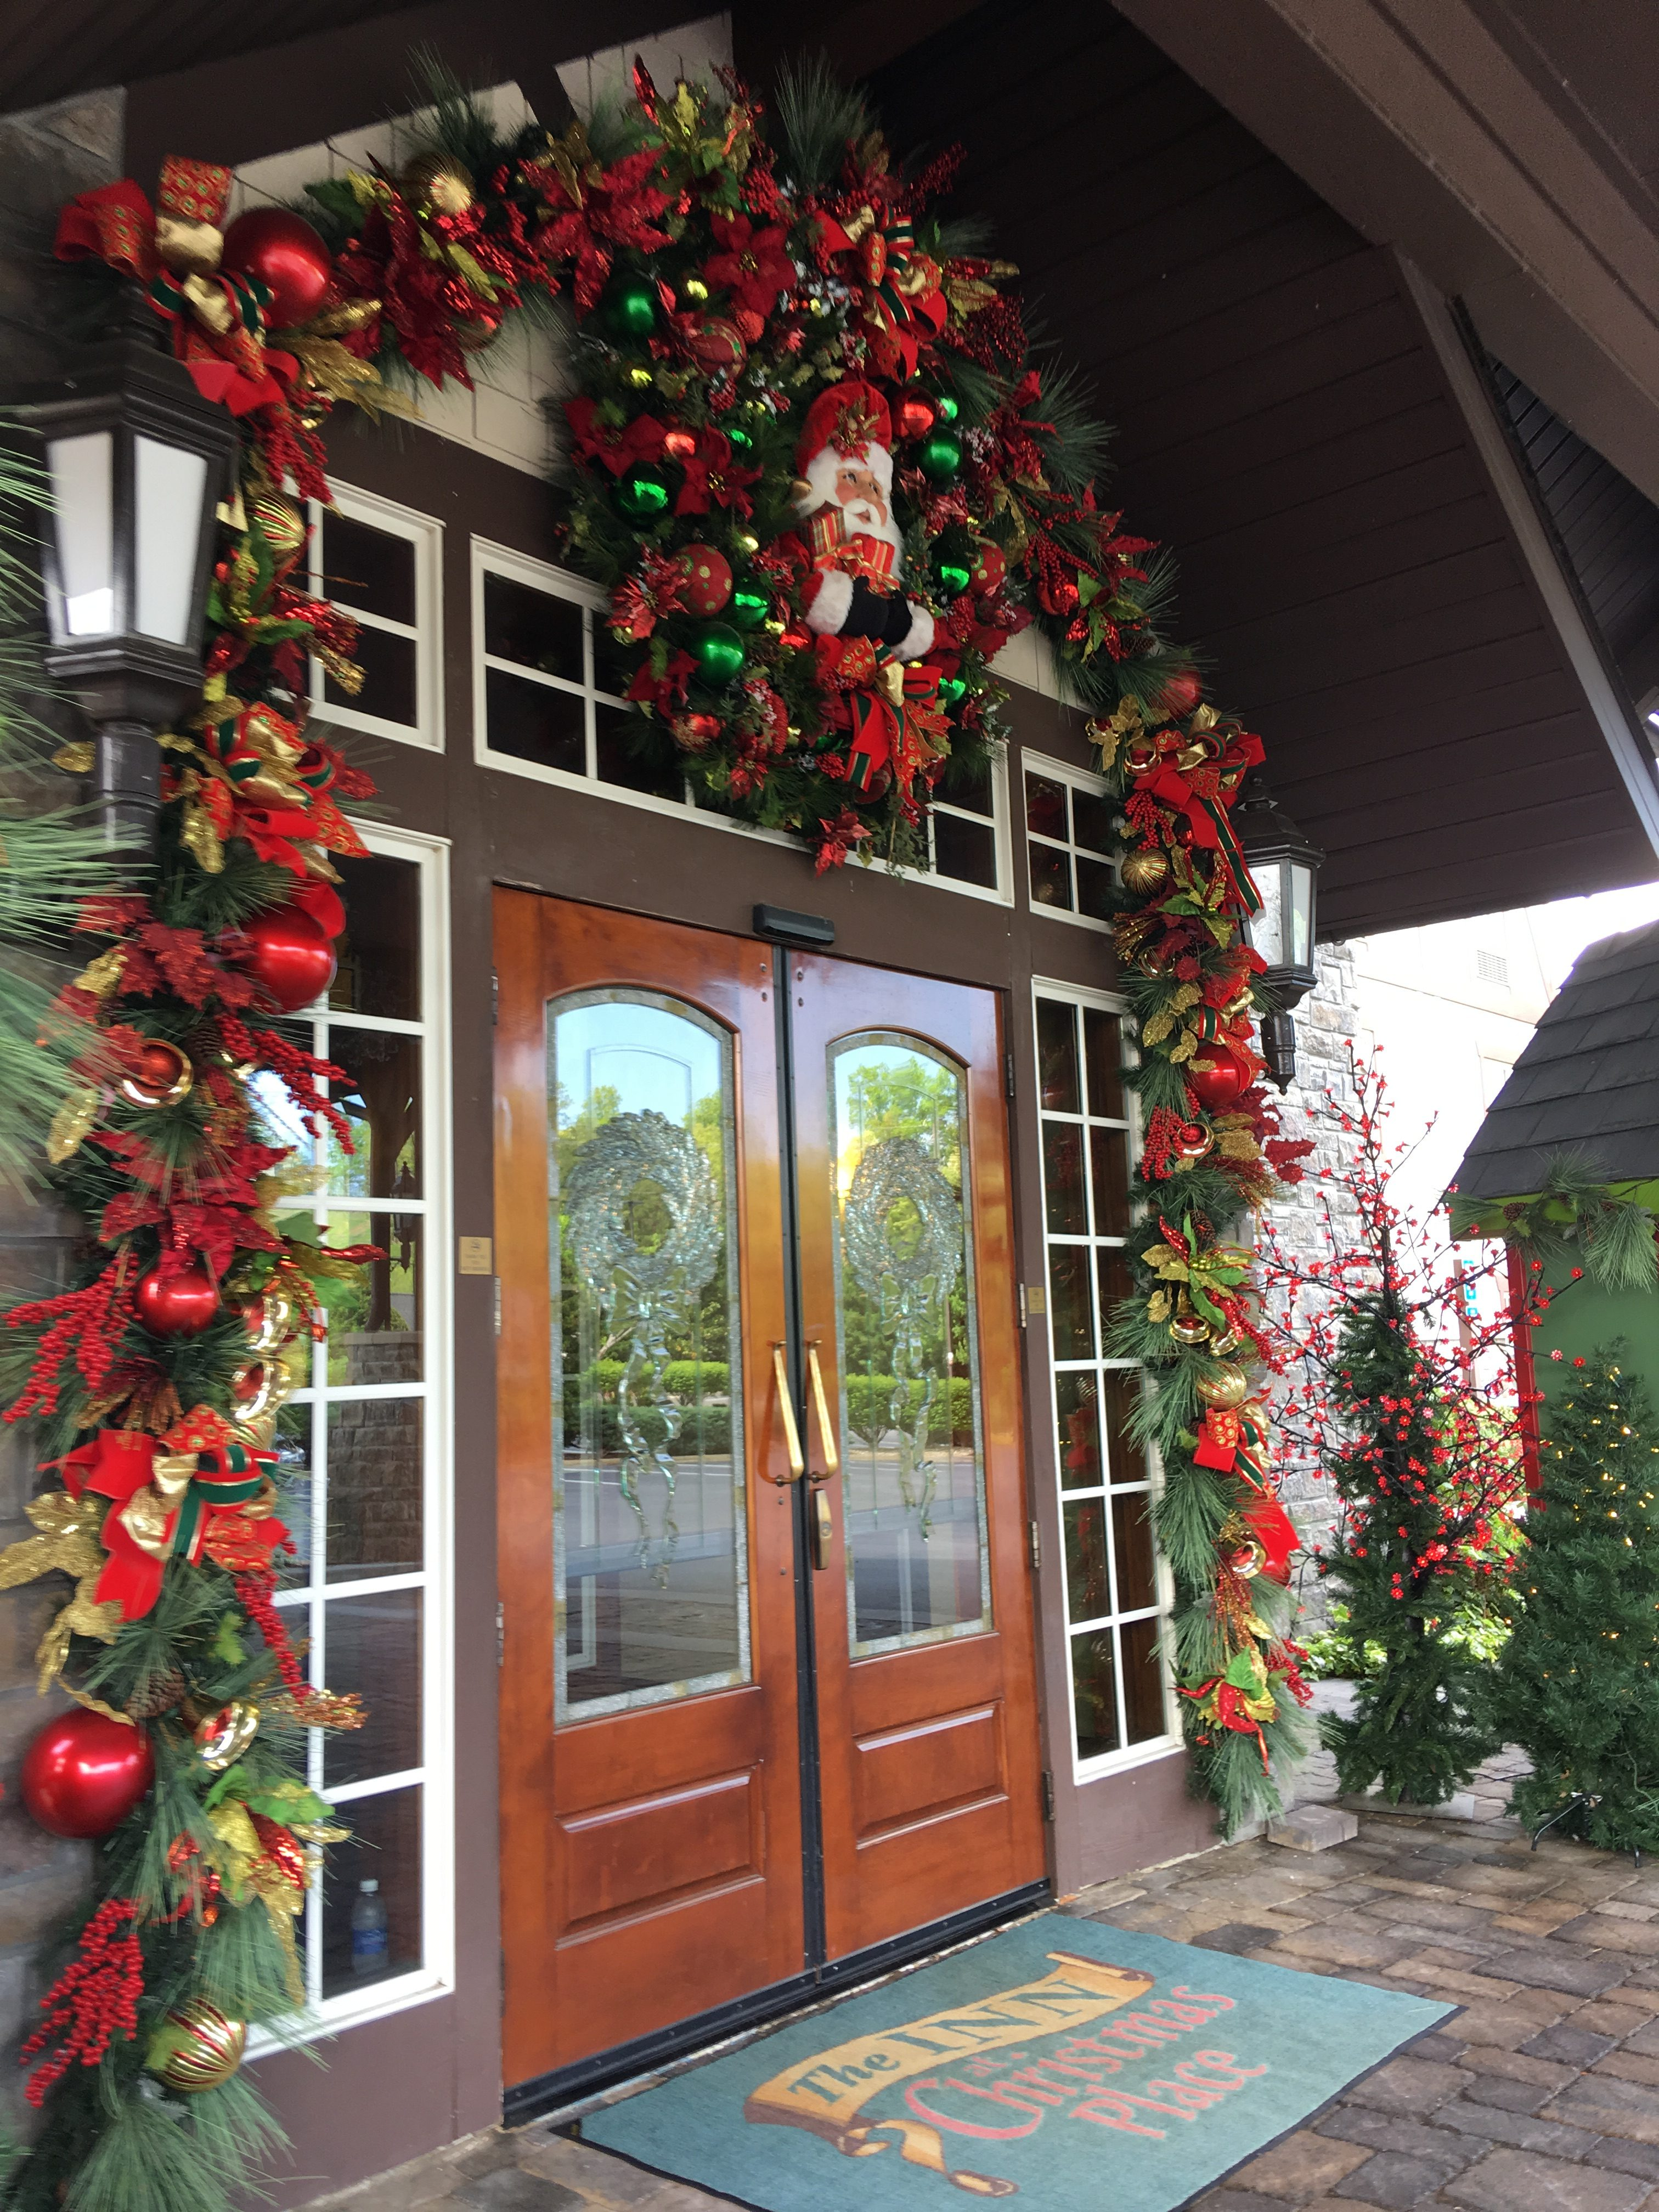 we drove up to the inn and was greeted by a suited door man and a bavarian hotel with christmas lights life sized nutcrackers and christmas music it was